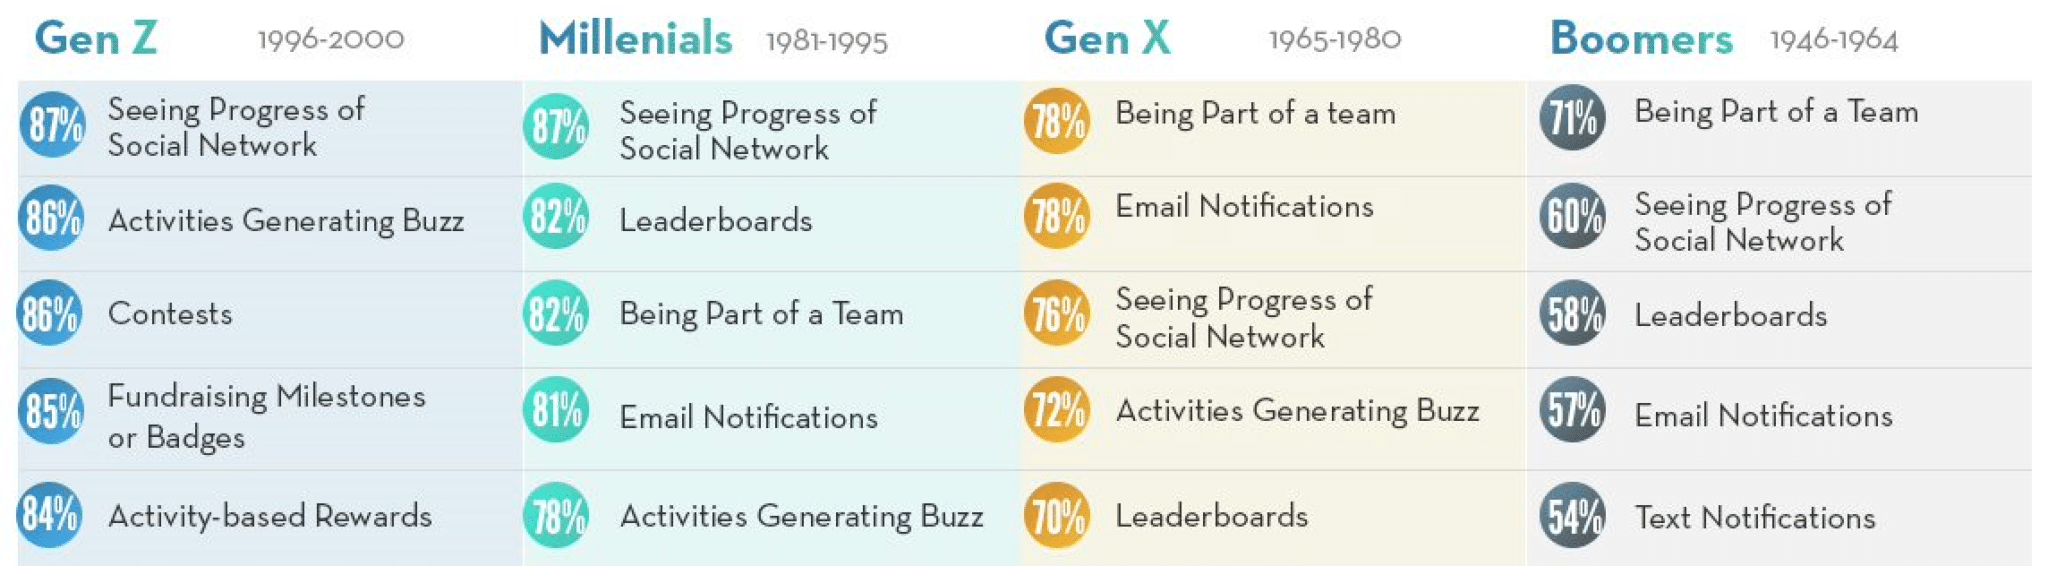 Top fundraising motivators for peer-to-peer participants per generation from the OneCause Social Fundraiser Study